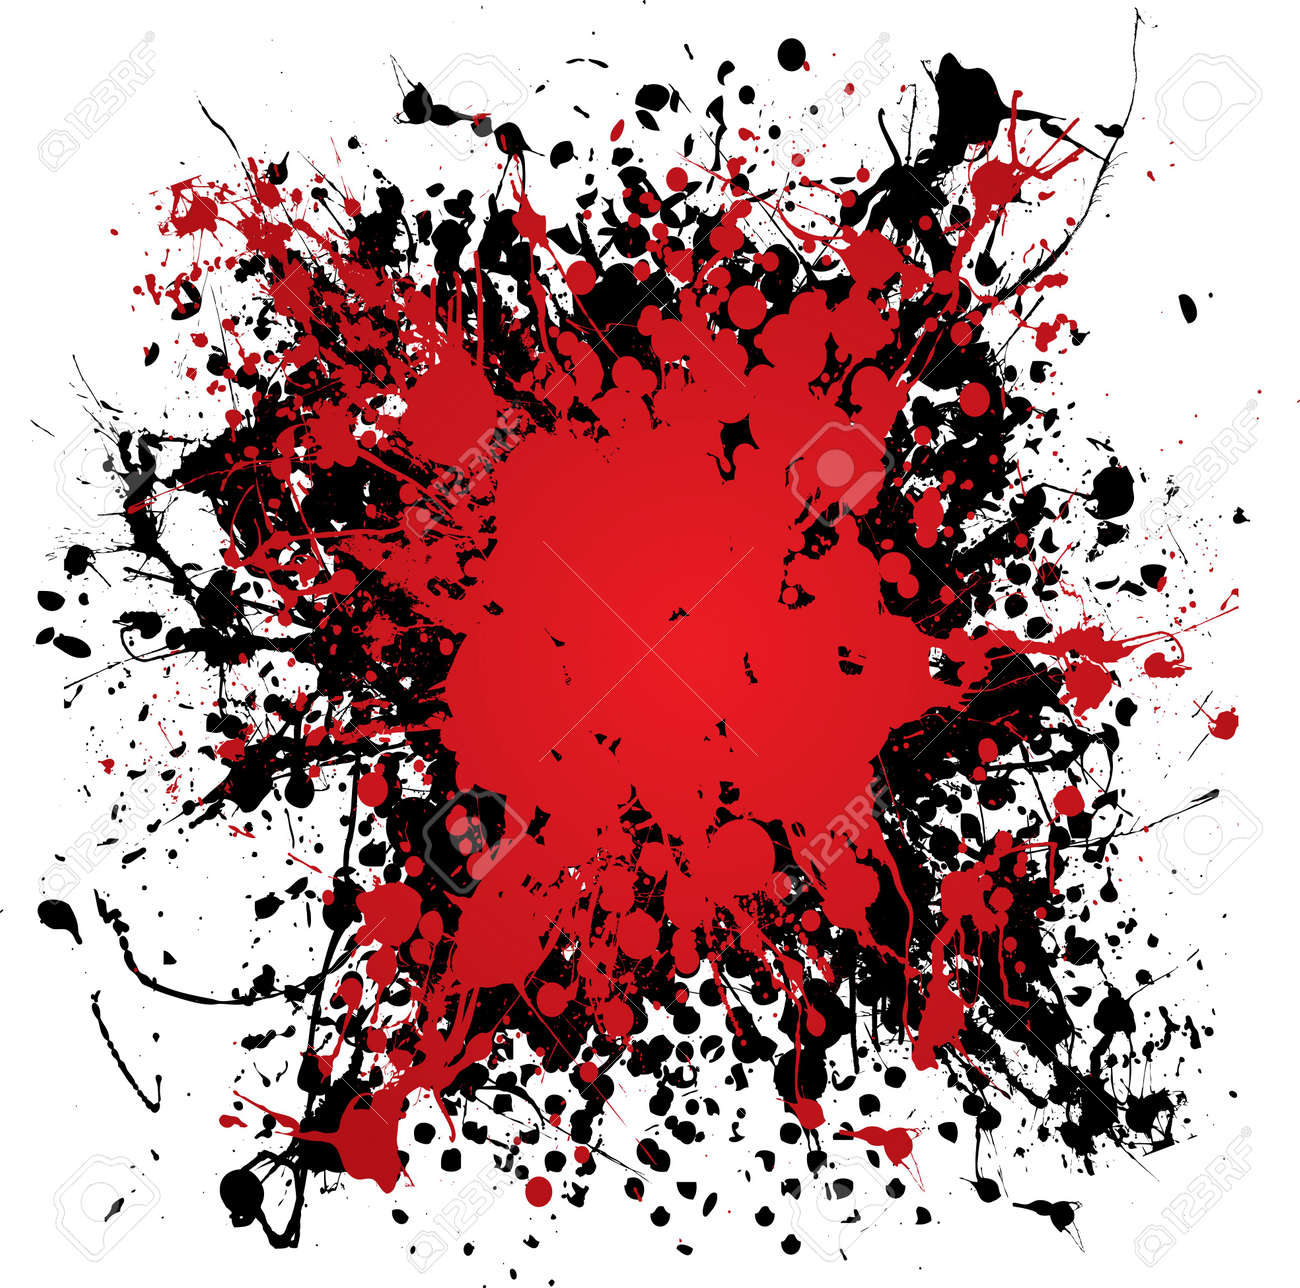 creative design red drop stock photos images. royalty free